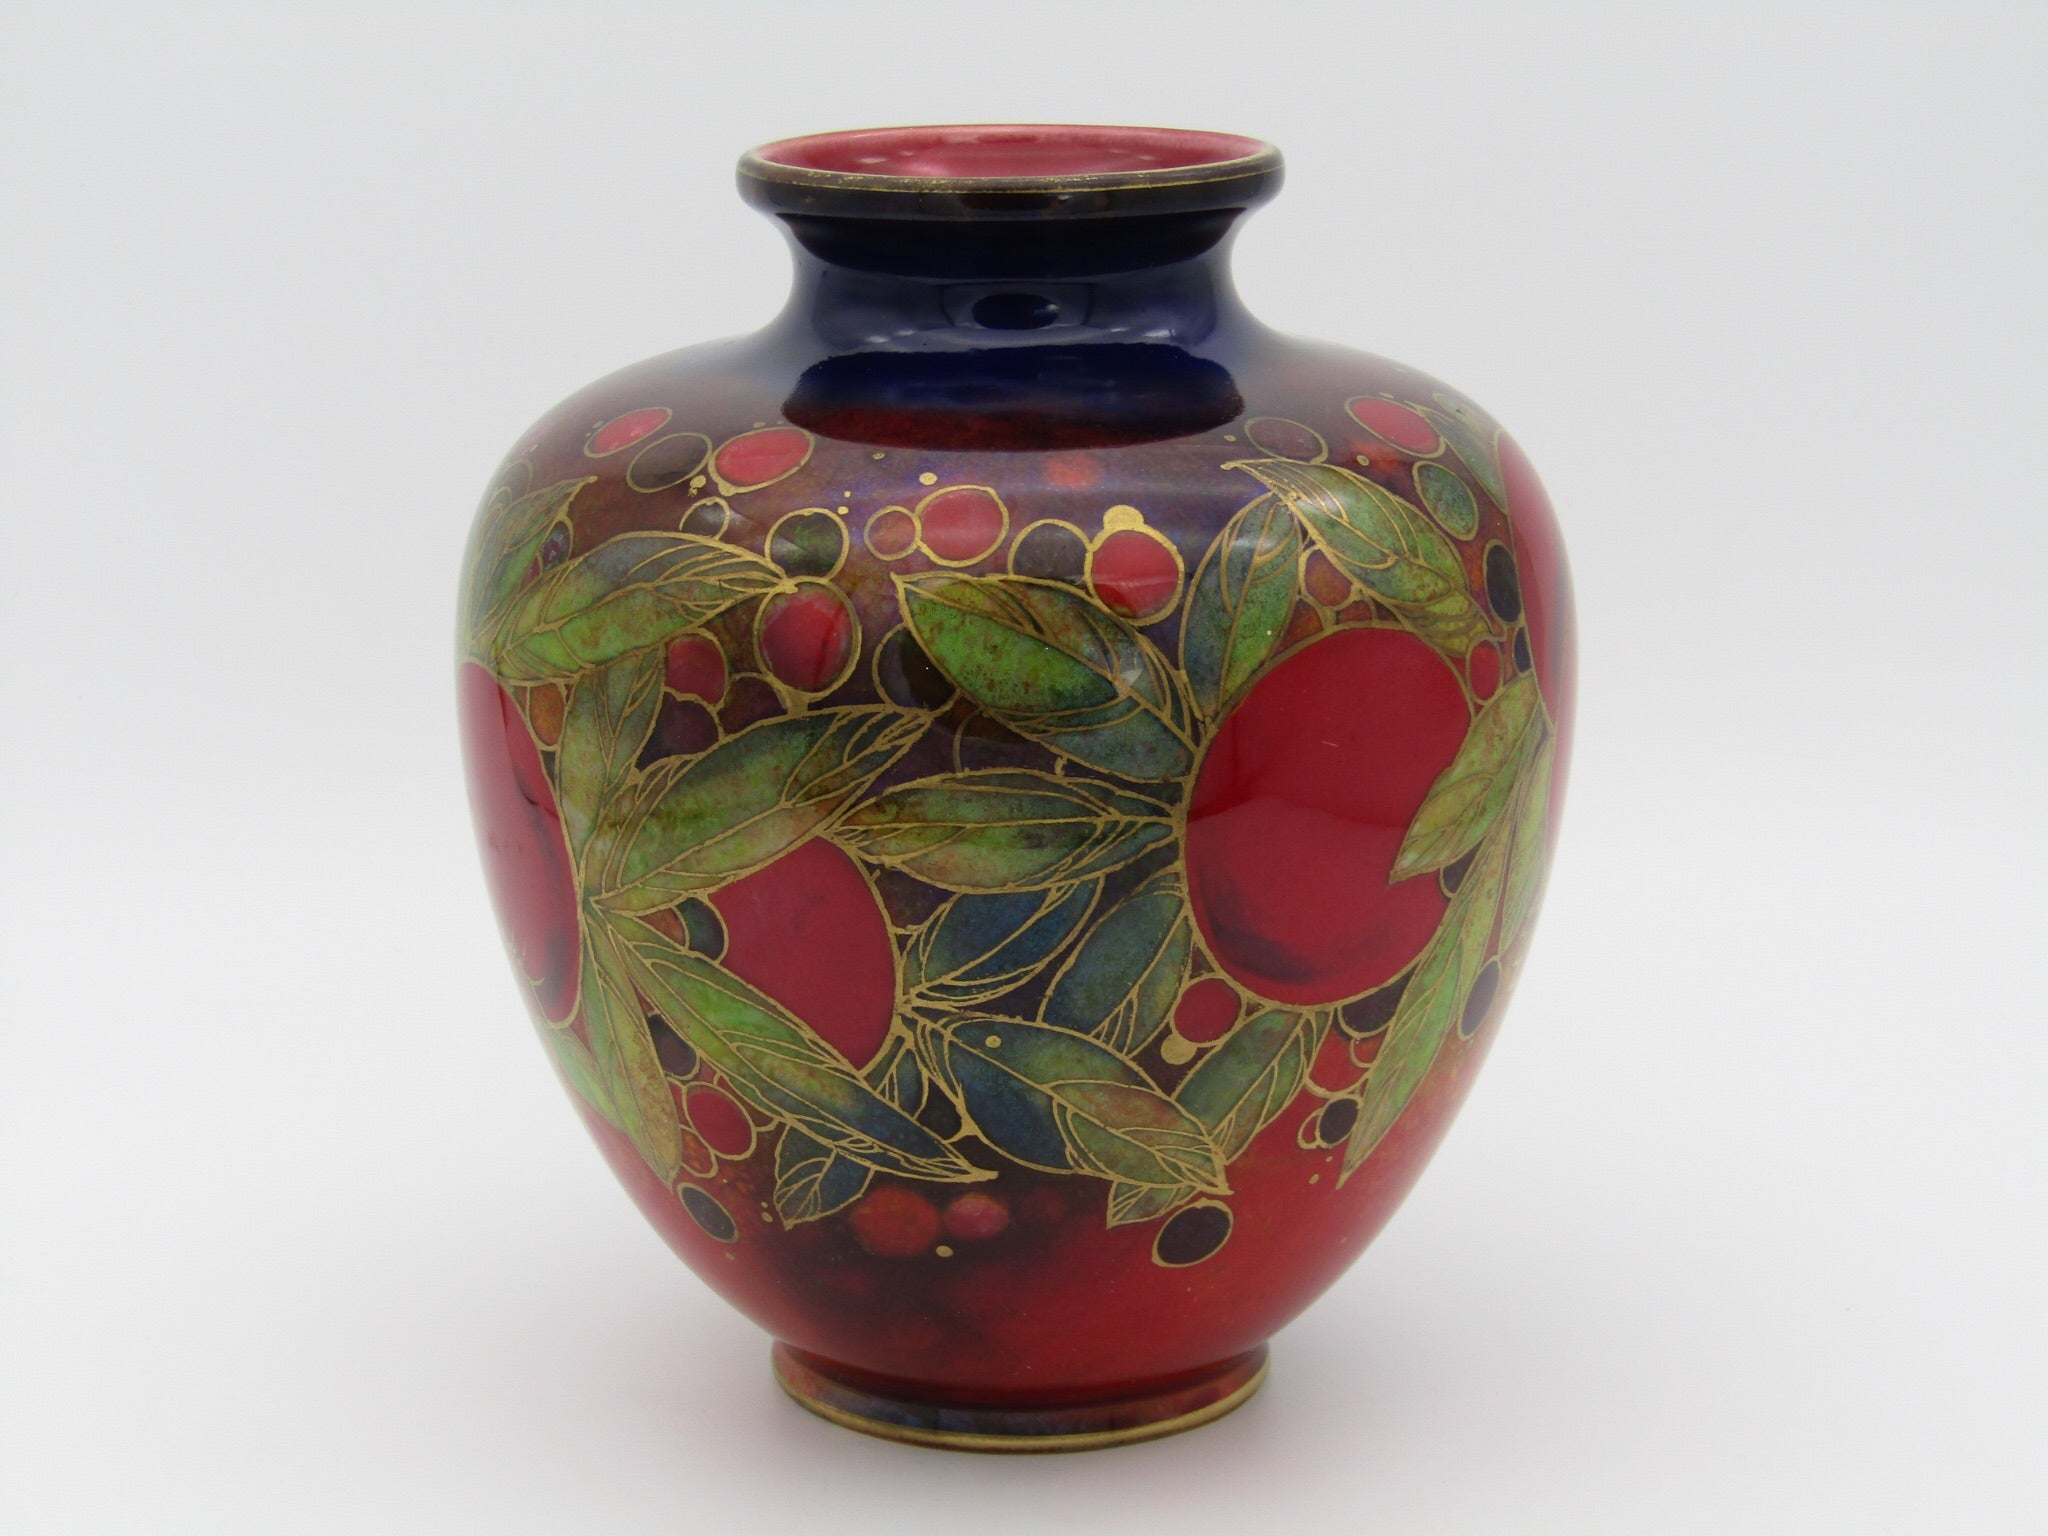 Royal Doulton Flambe Pomegranate bulbous vase with gilt highlights by Harry Nixon.